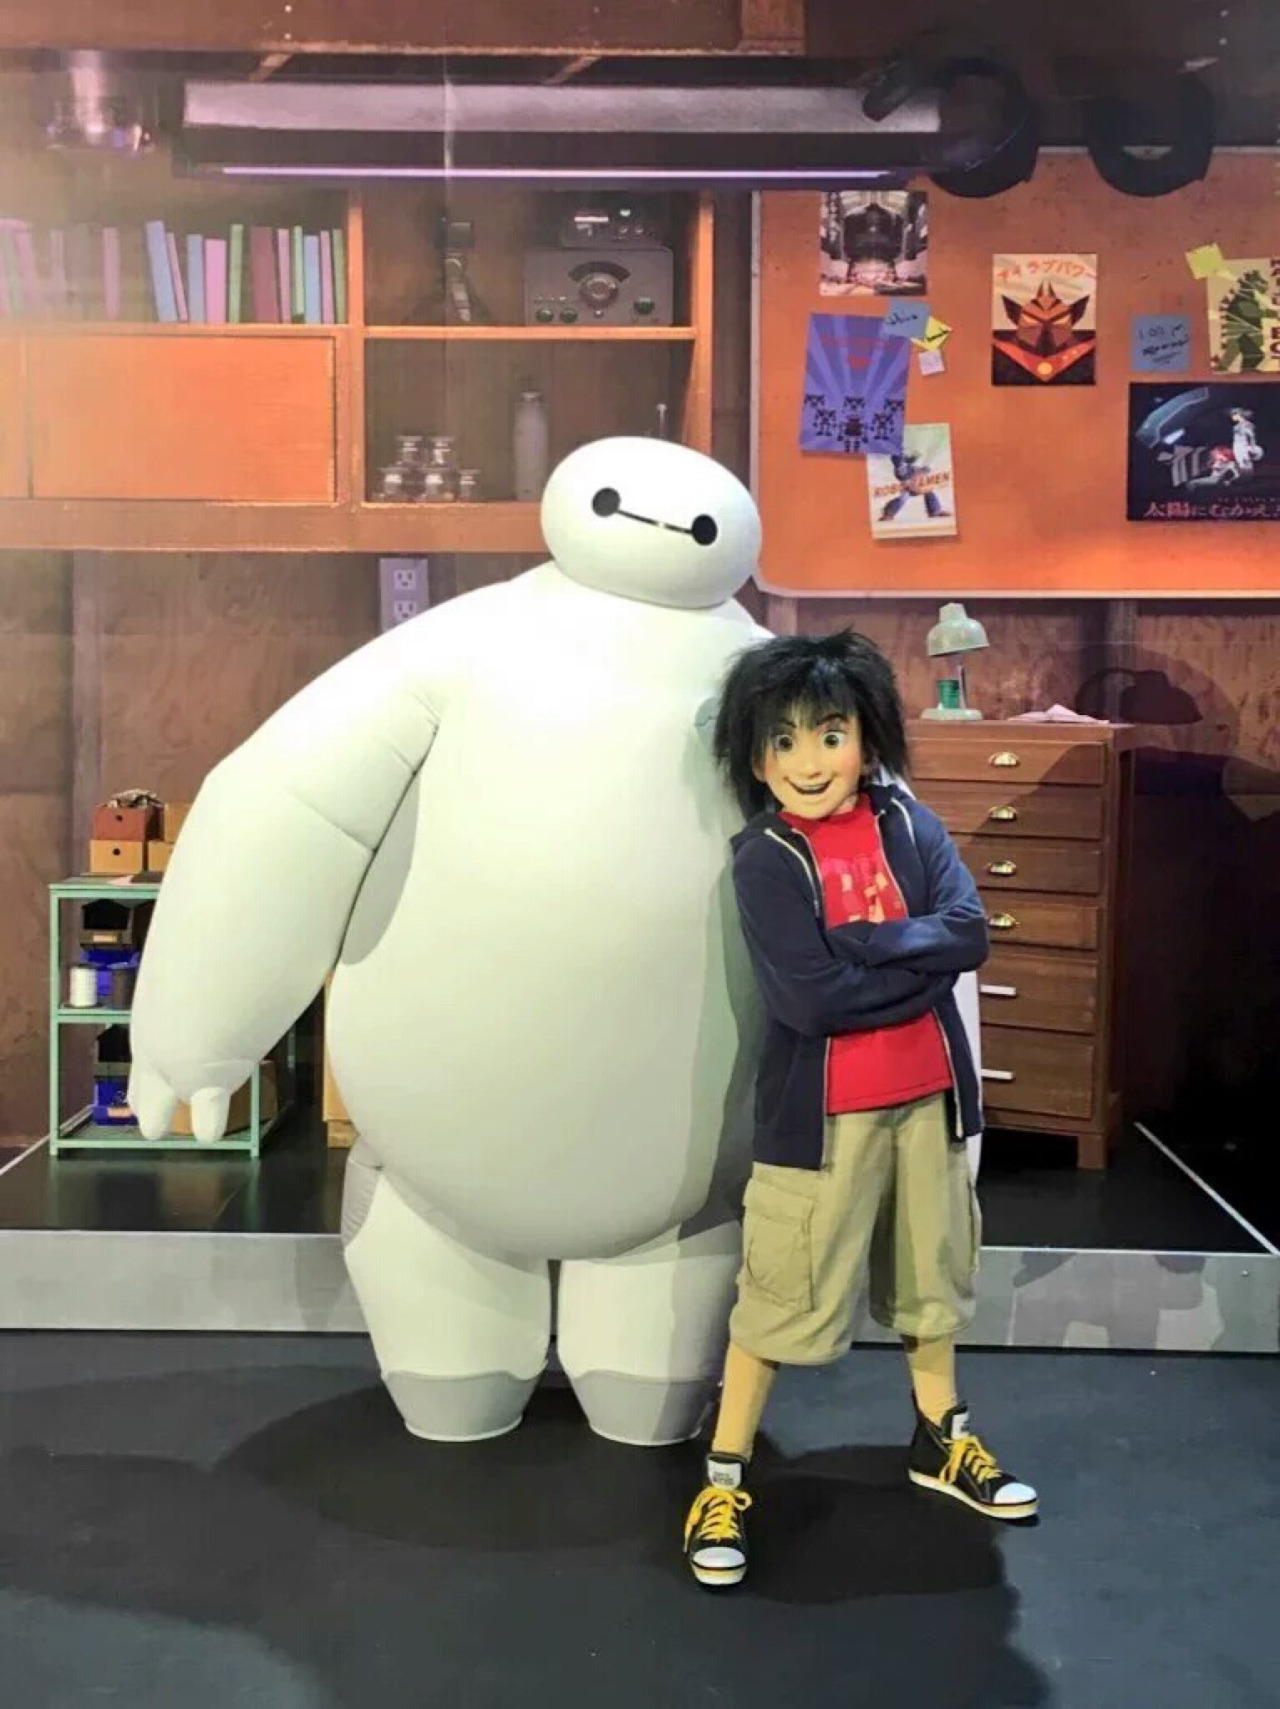 Big Hero 6 characters for a private event/party at Disneyland in Paris